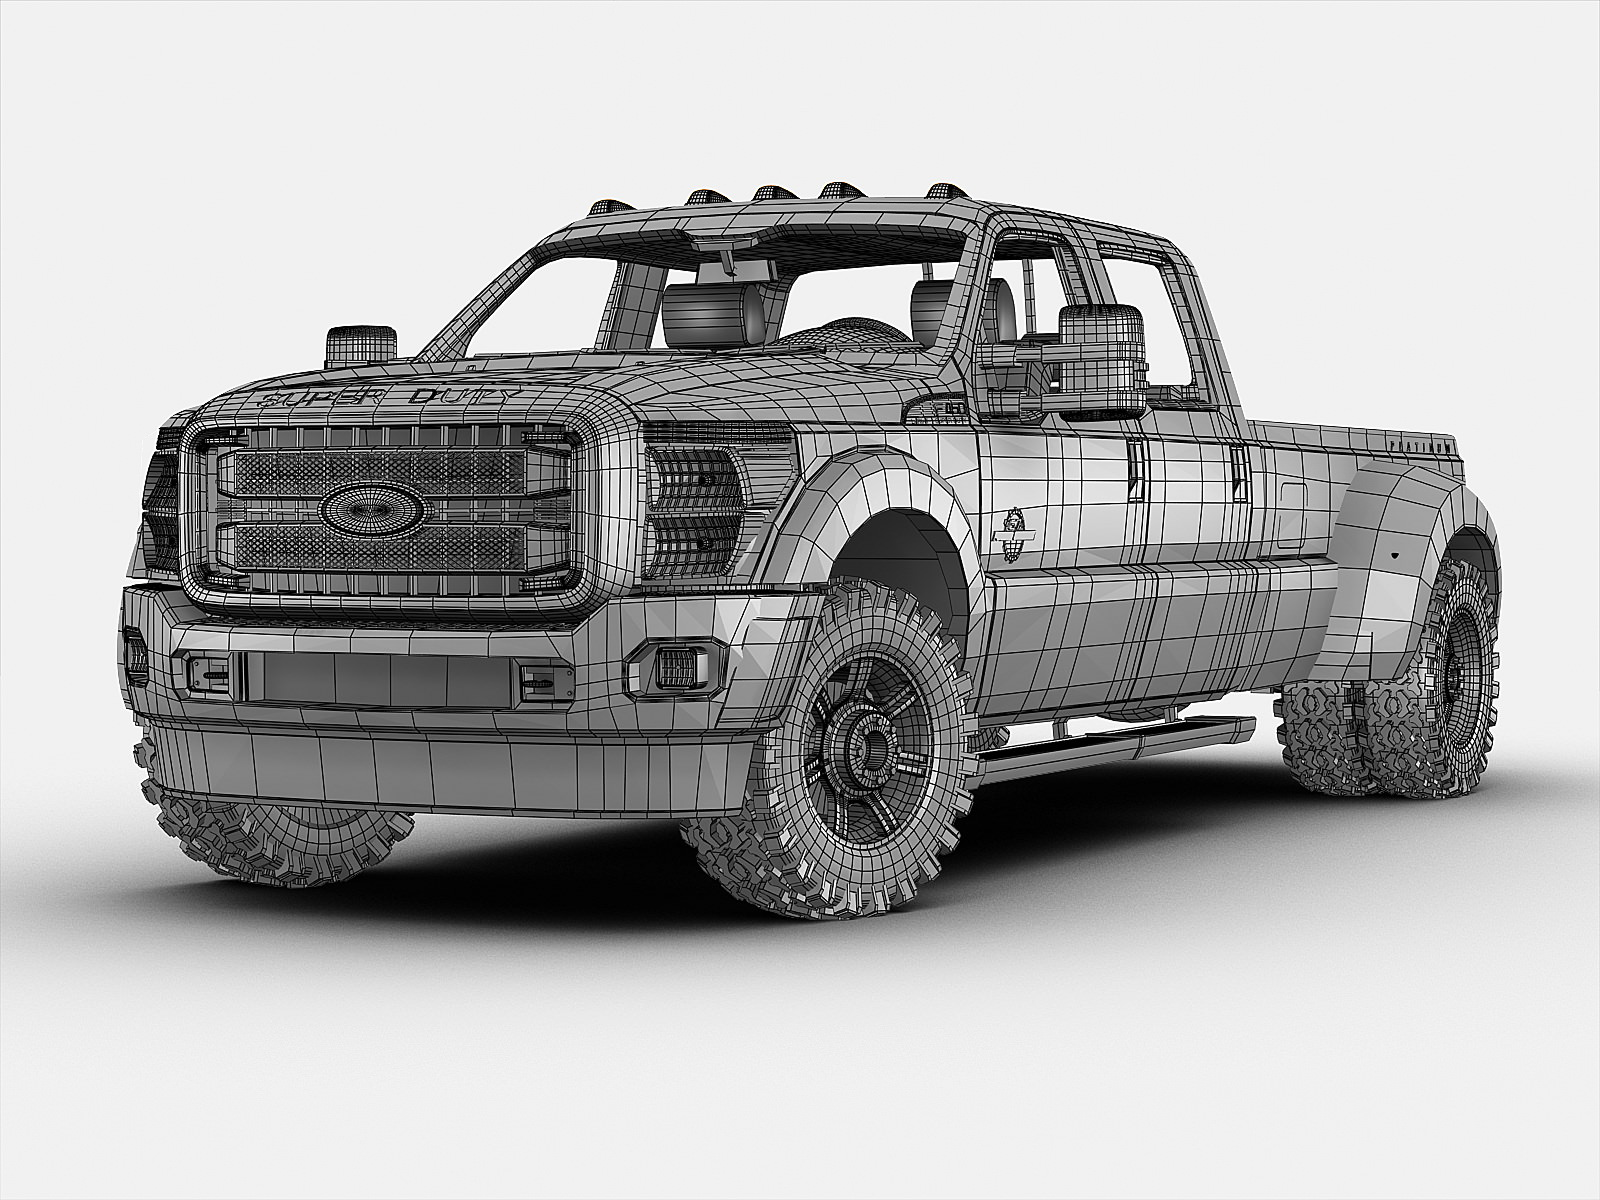 ford f250 superduty 2010 3D Model .max .3ds - CGTrader.com |New Model Super Duty